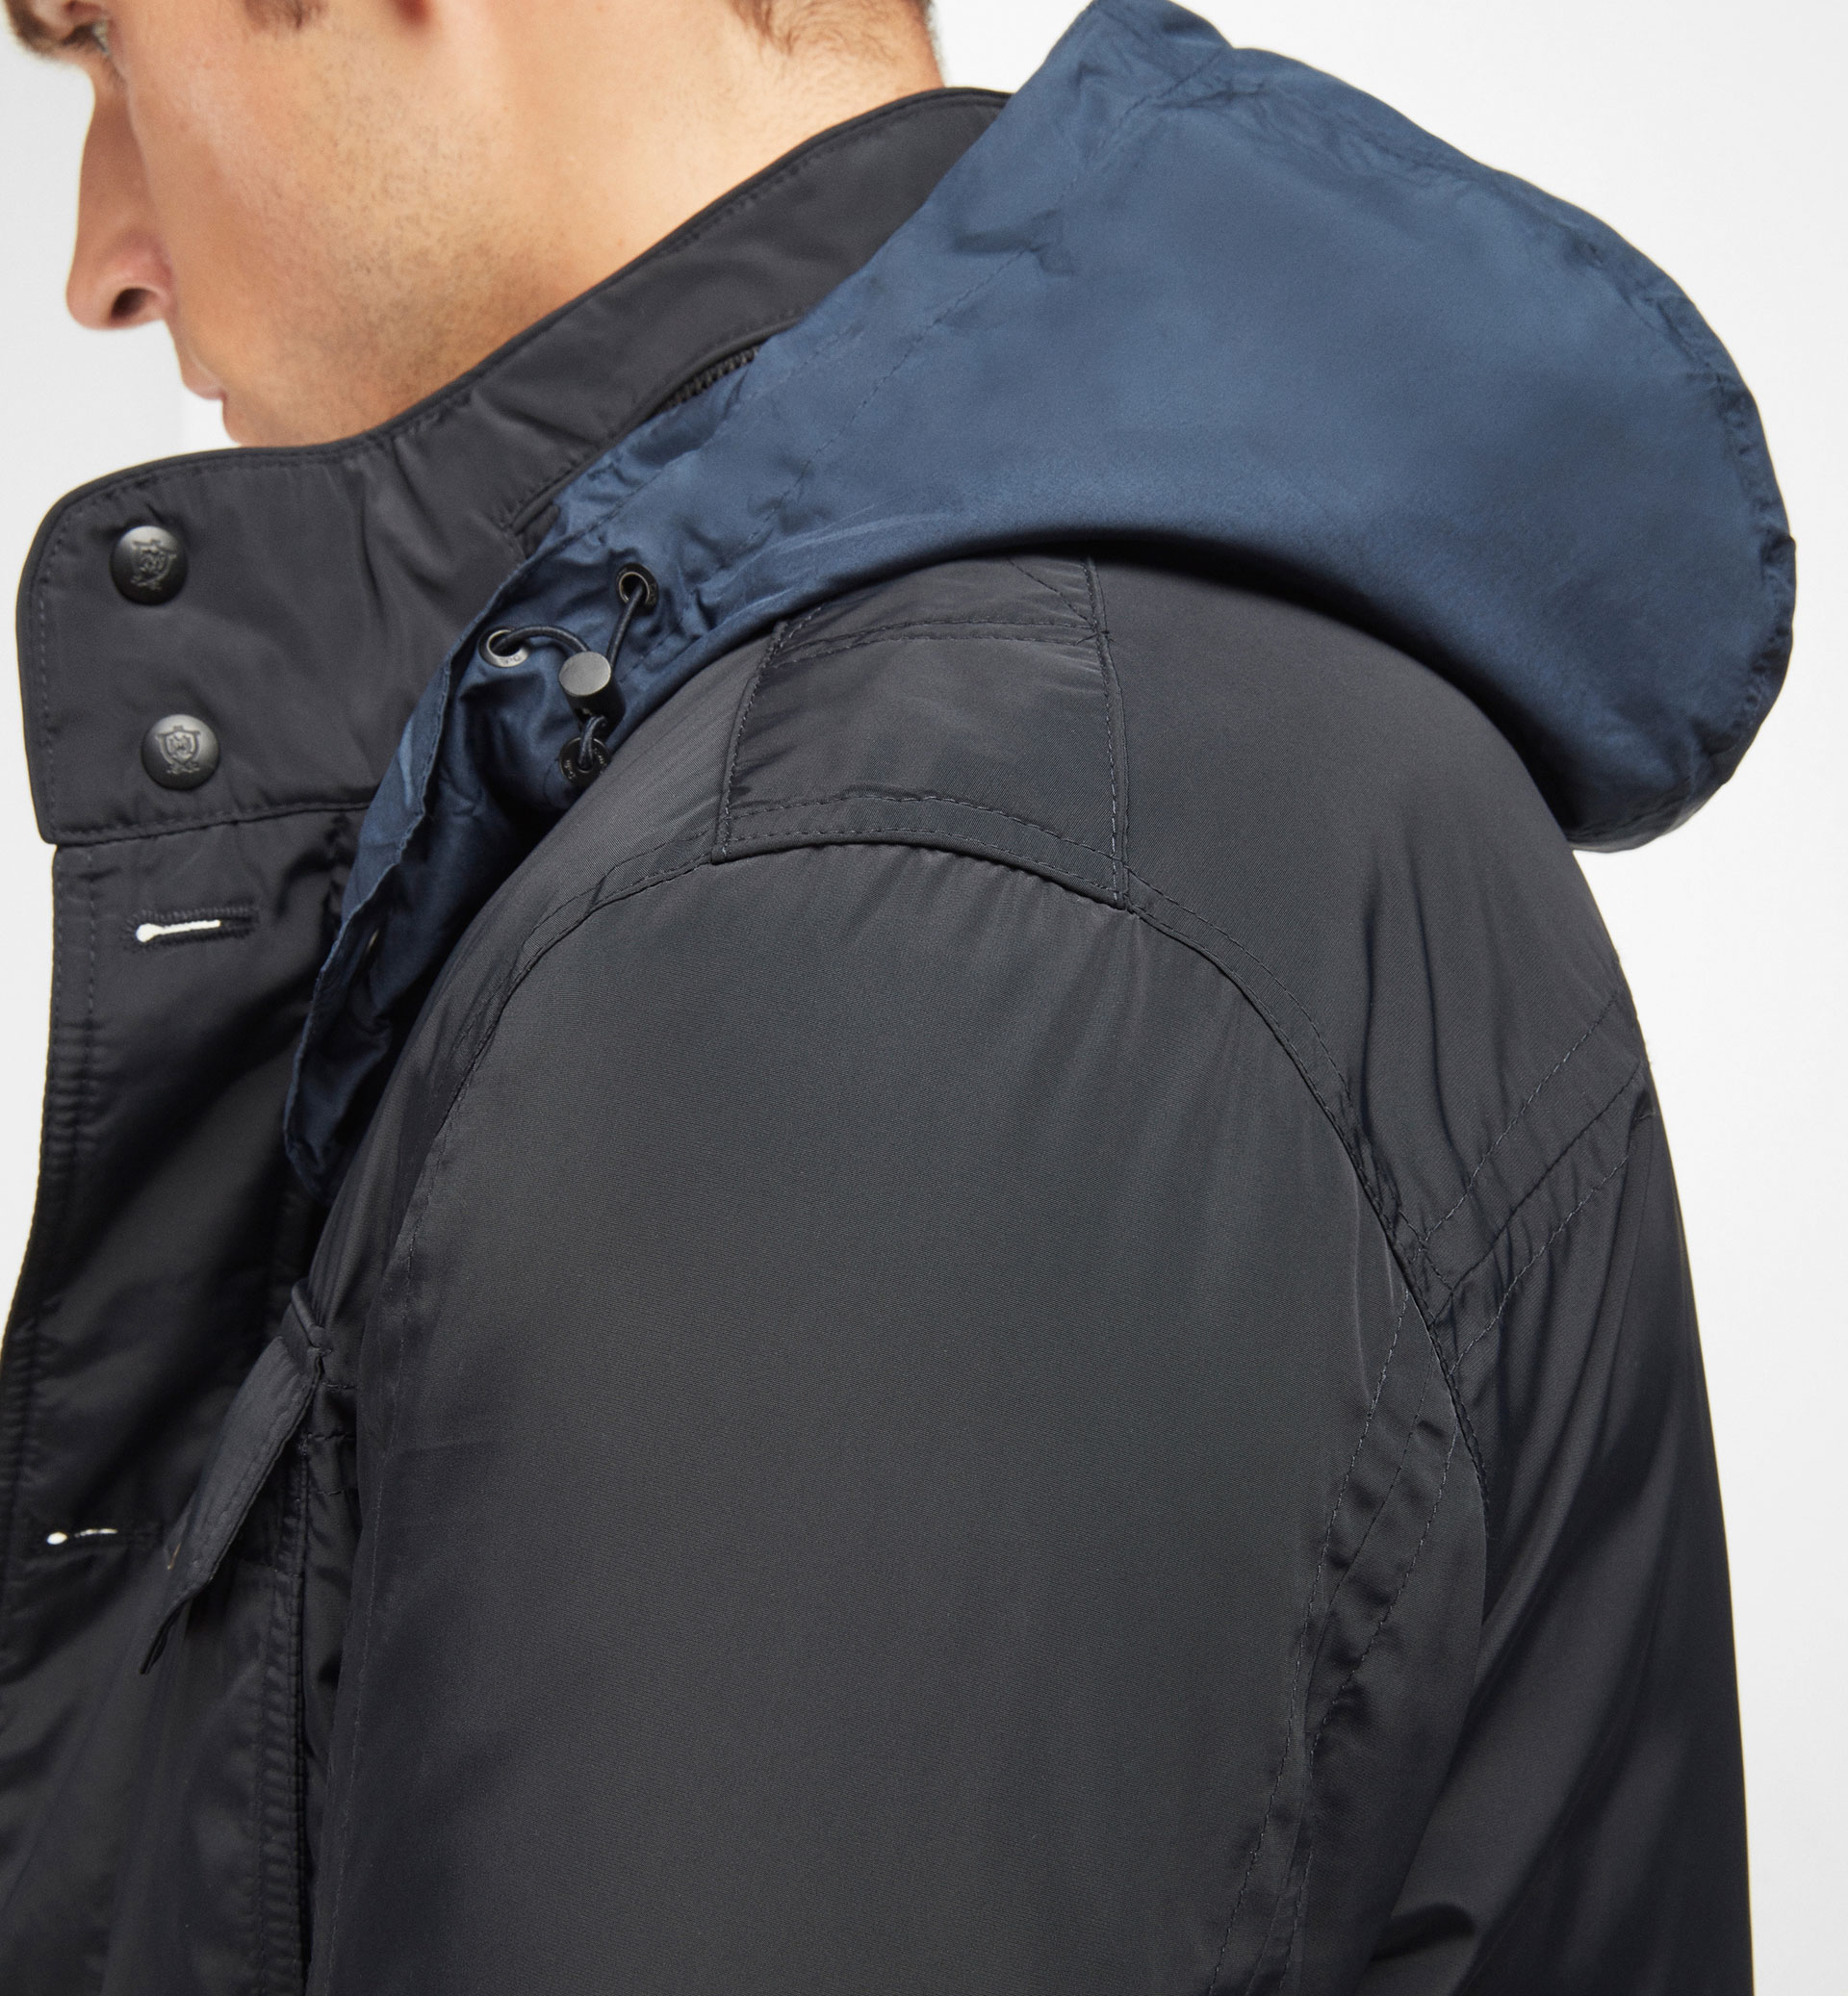 NAVY TECHNICAL PARKA WITH POCKET DETAILS